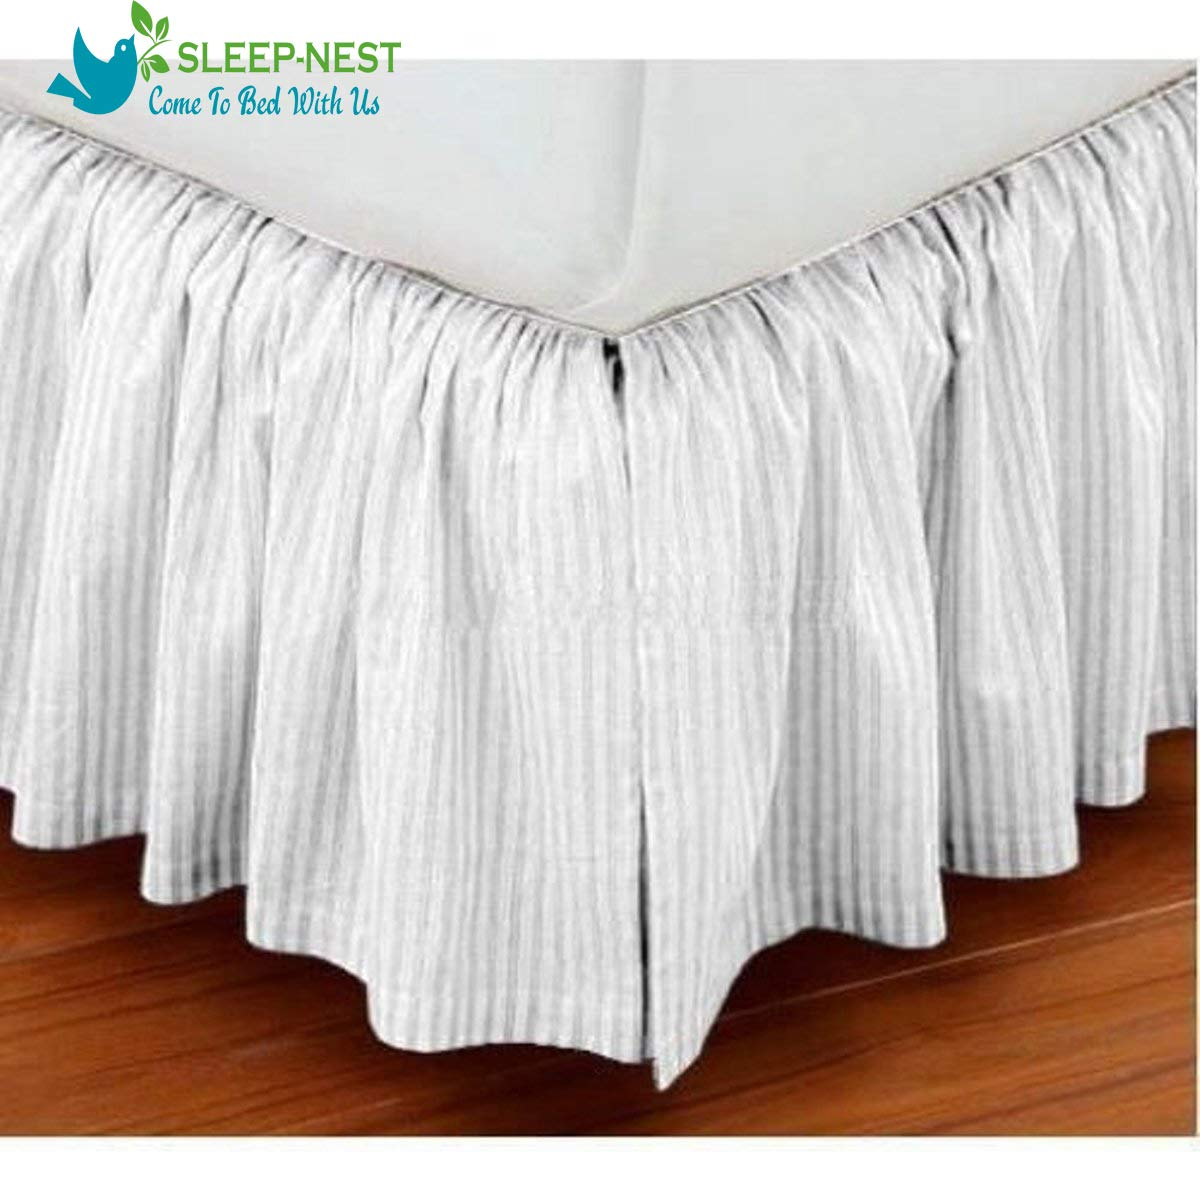 Sleep-Nest Hotel Quality 600 TC Natural Cotton Twin XL Size 1-Pcs Split Corner Dust Ruffle Bed Skirt 32 Inch Drop Length Easy Fit, Wrinkle & Fade Resistant, White Striped